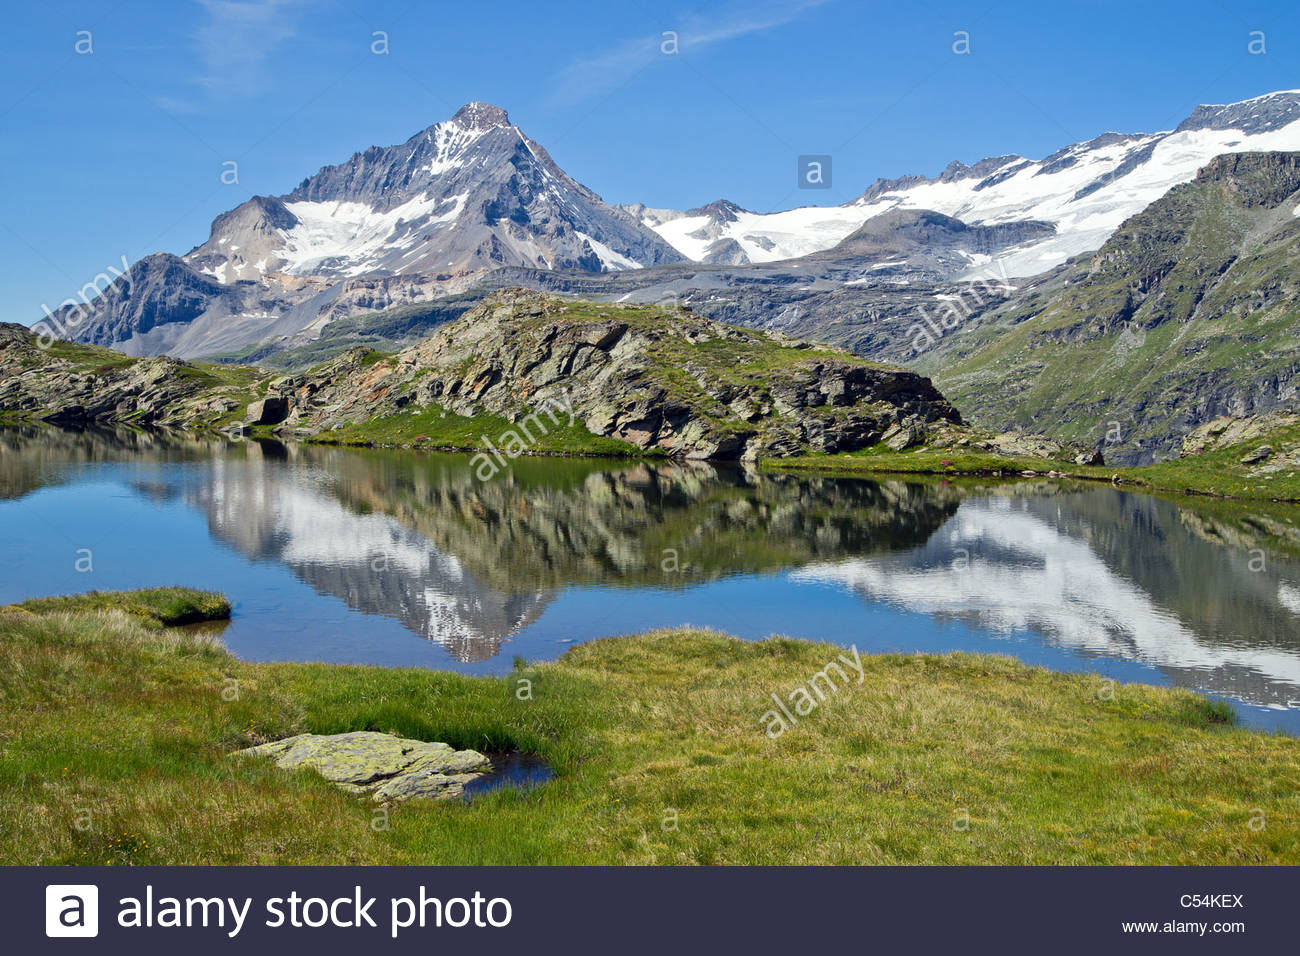 Reflections of the Dent Parrachée in alpine lake of Vanoise mountain range - Maurienne - Savoy (France) - Stock Image